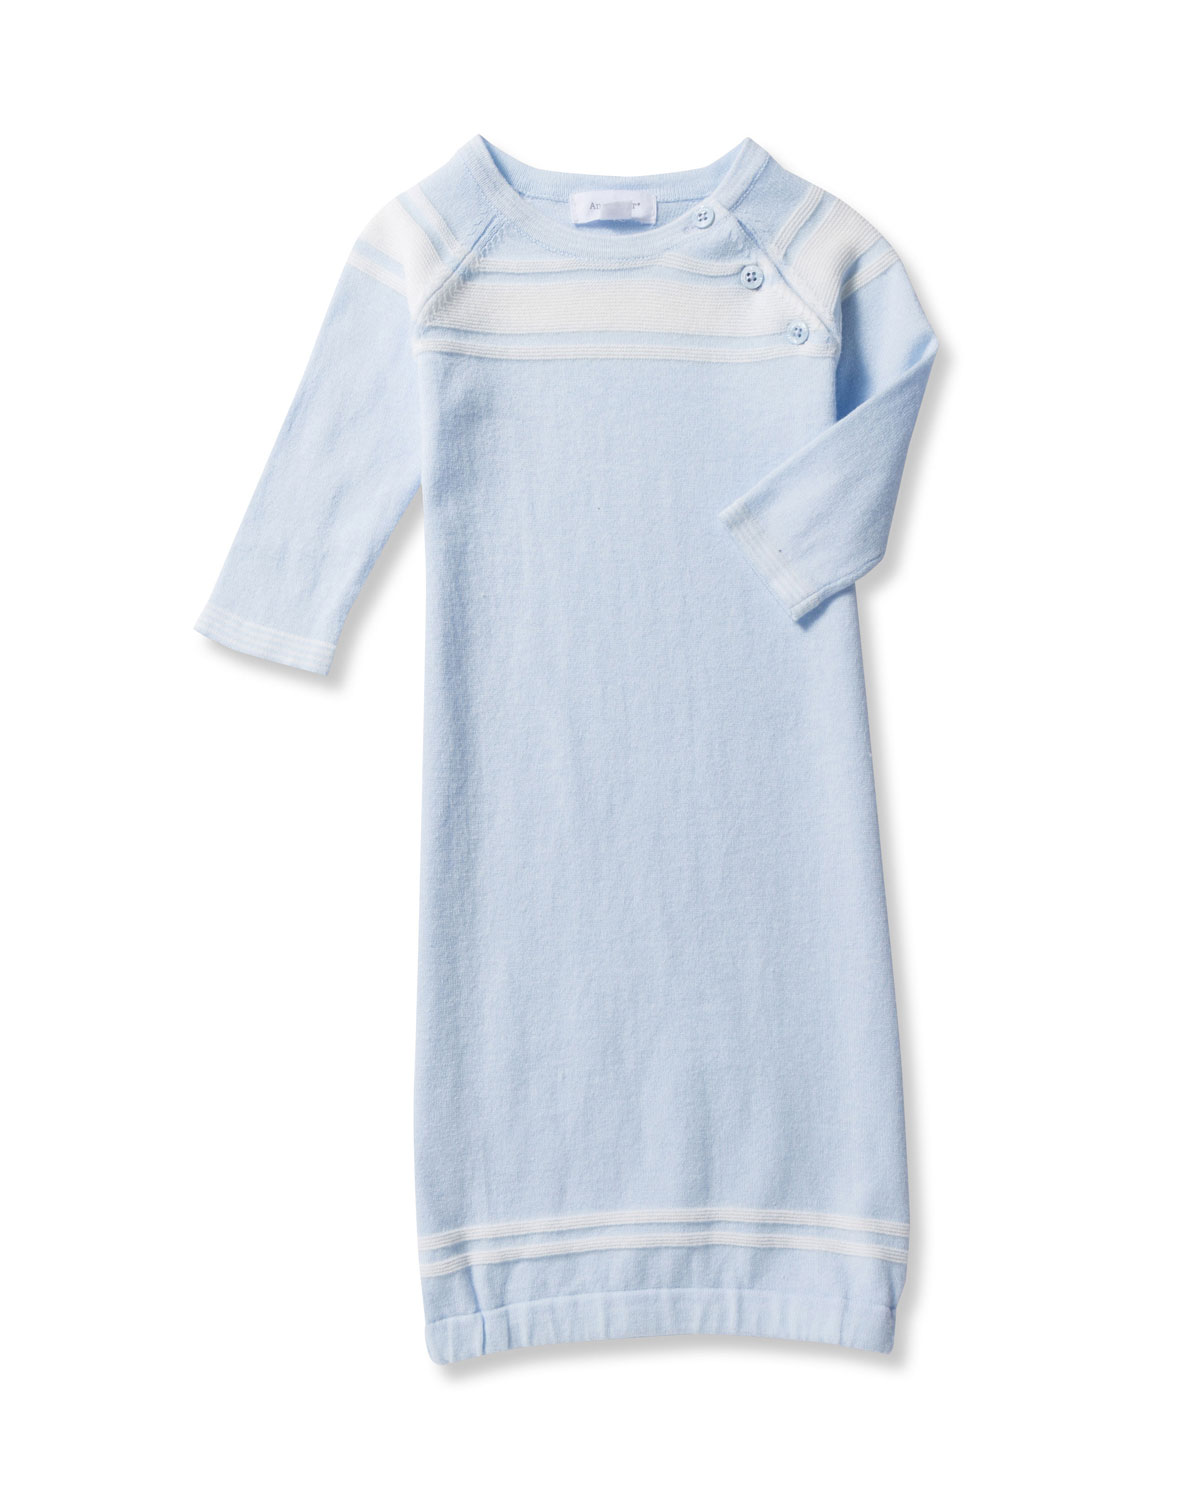 Angel Dear Take Me Home Knit Gown, Size 0-3 Months | Neiman Marcus